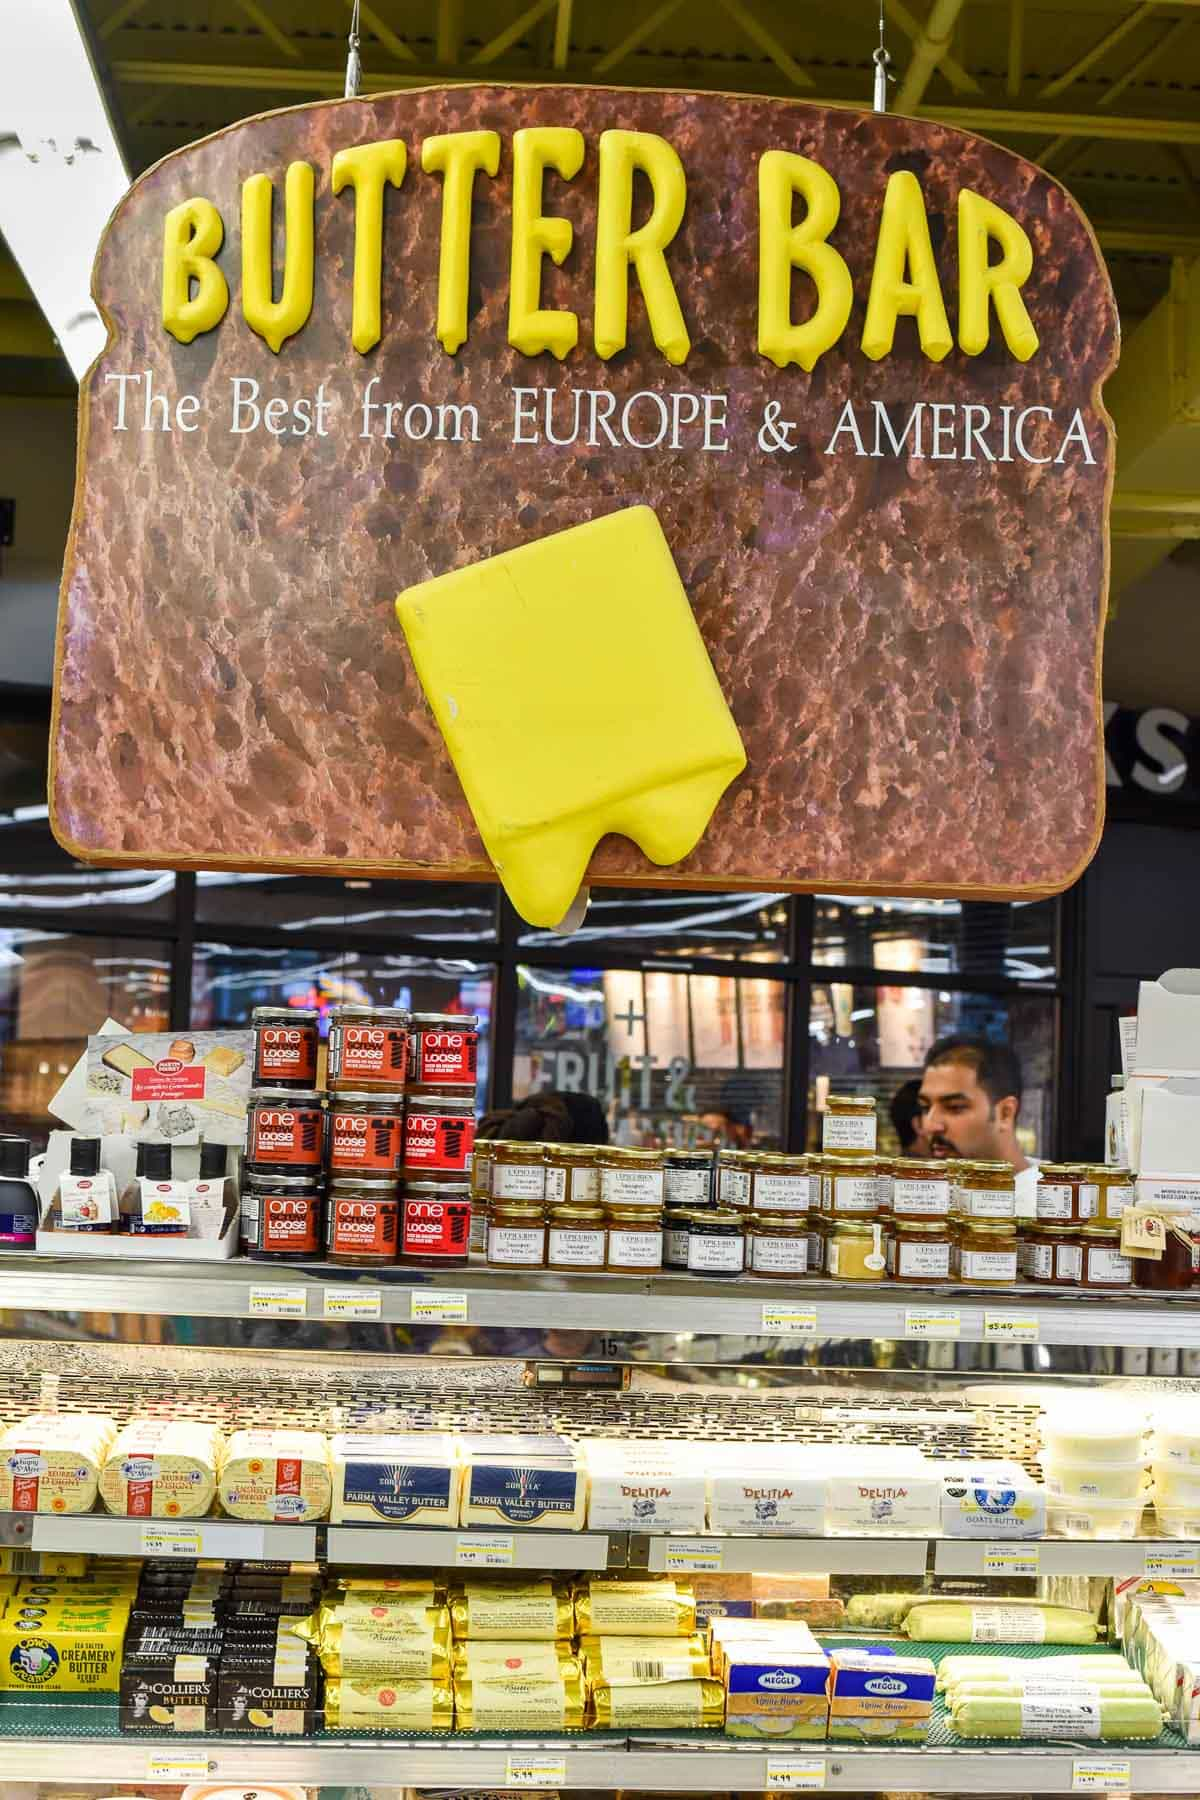 Visit Jungle Jim's International Market, which includes this epic butter bar!